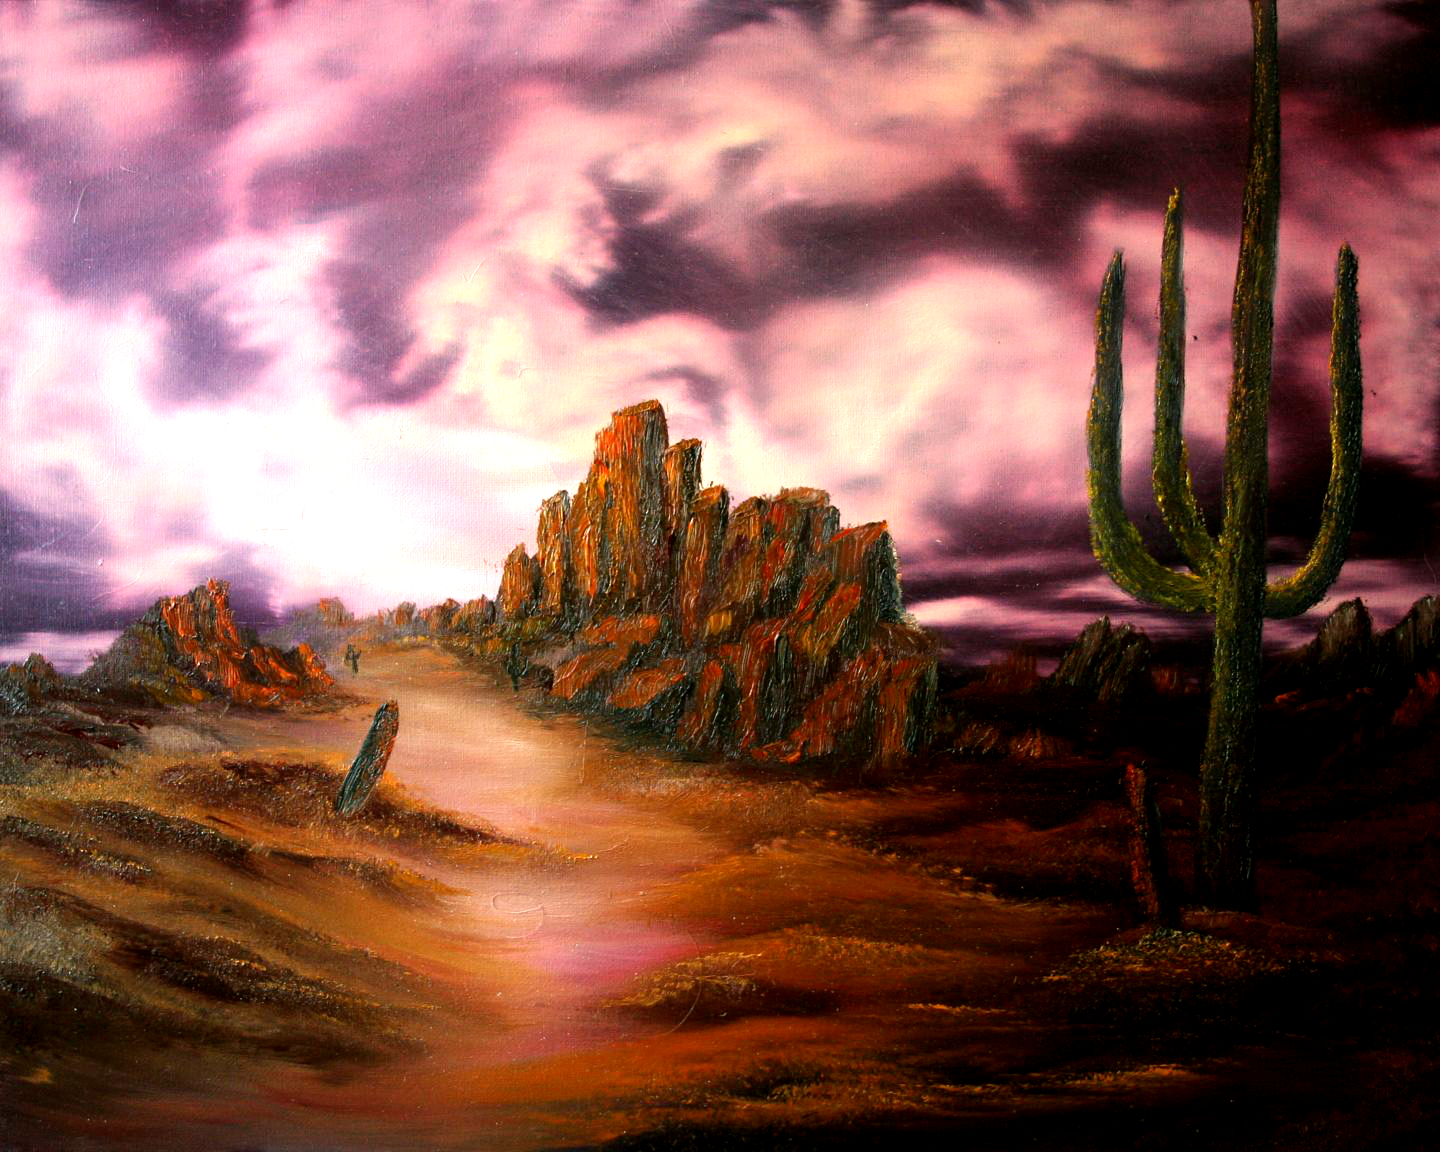 oil-Spectacular Cactus Sky: Stage II Oils Course